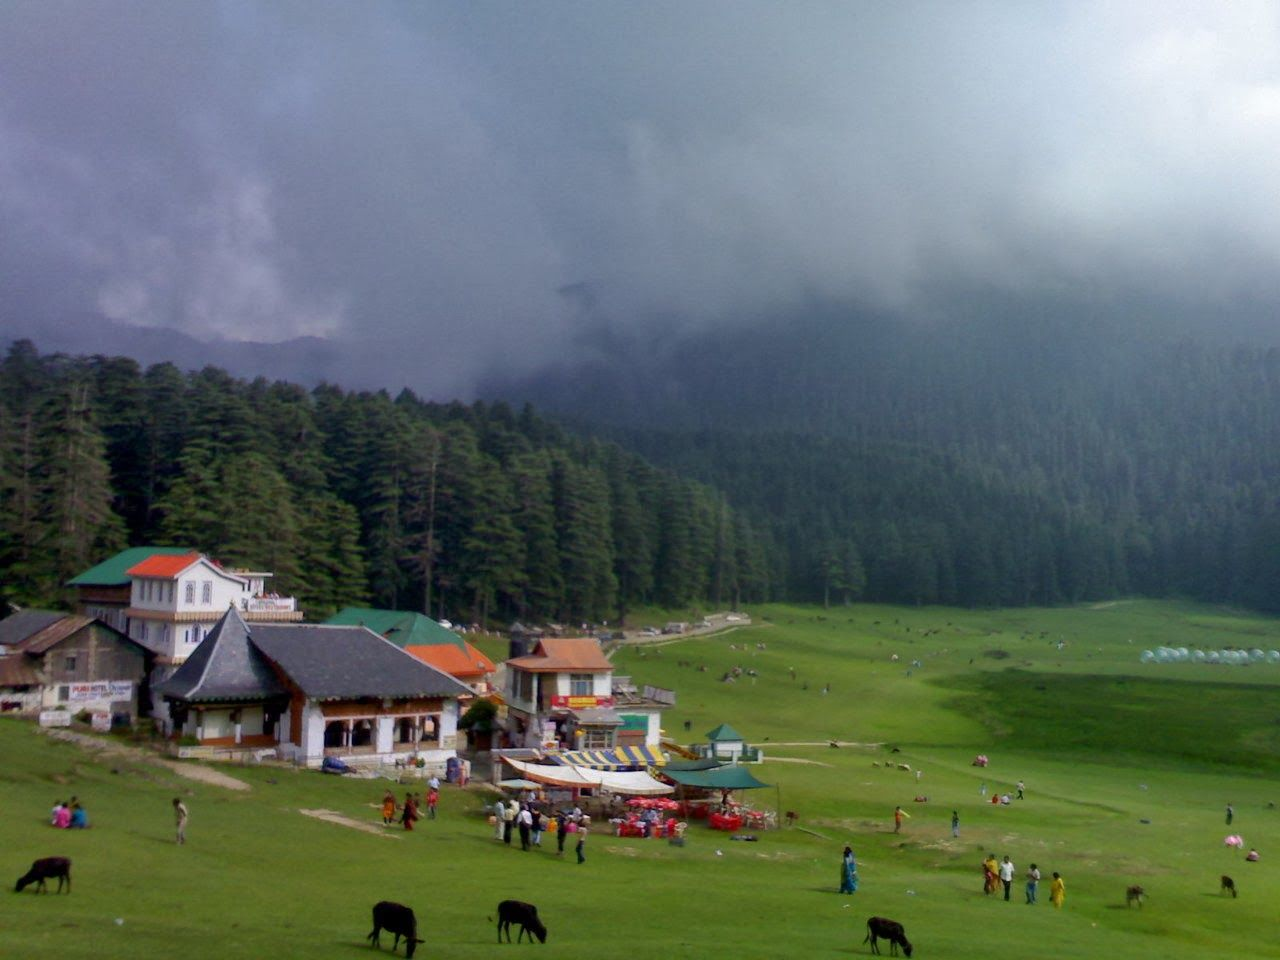 Tourist attractions in himachal  The capital of the state of Himachal Pradesh is a heavenly destination that is a must for those who wish to explore some bewitching vistas of the Indian landmass. Shimla has become one of the most prominent and most sought after destination that invites an array of travelers at all times of the year.